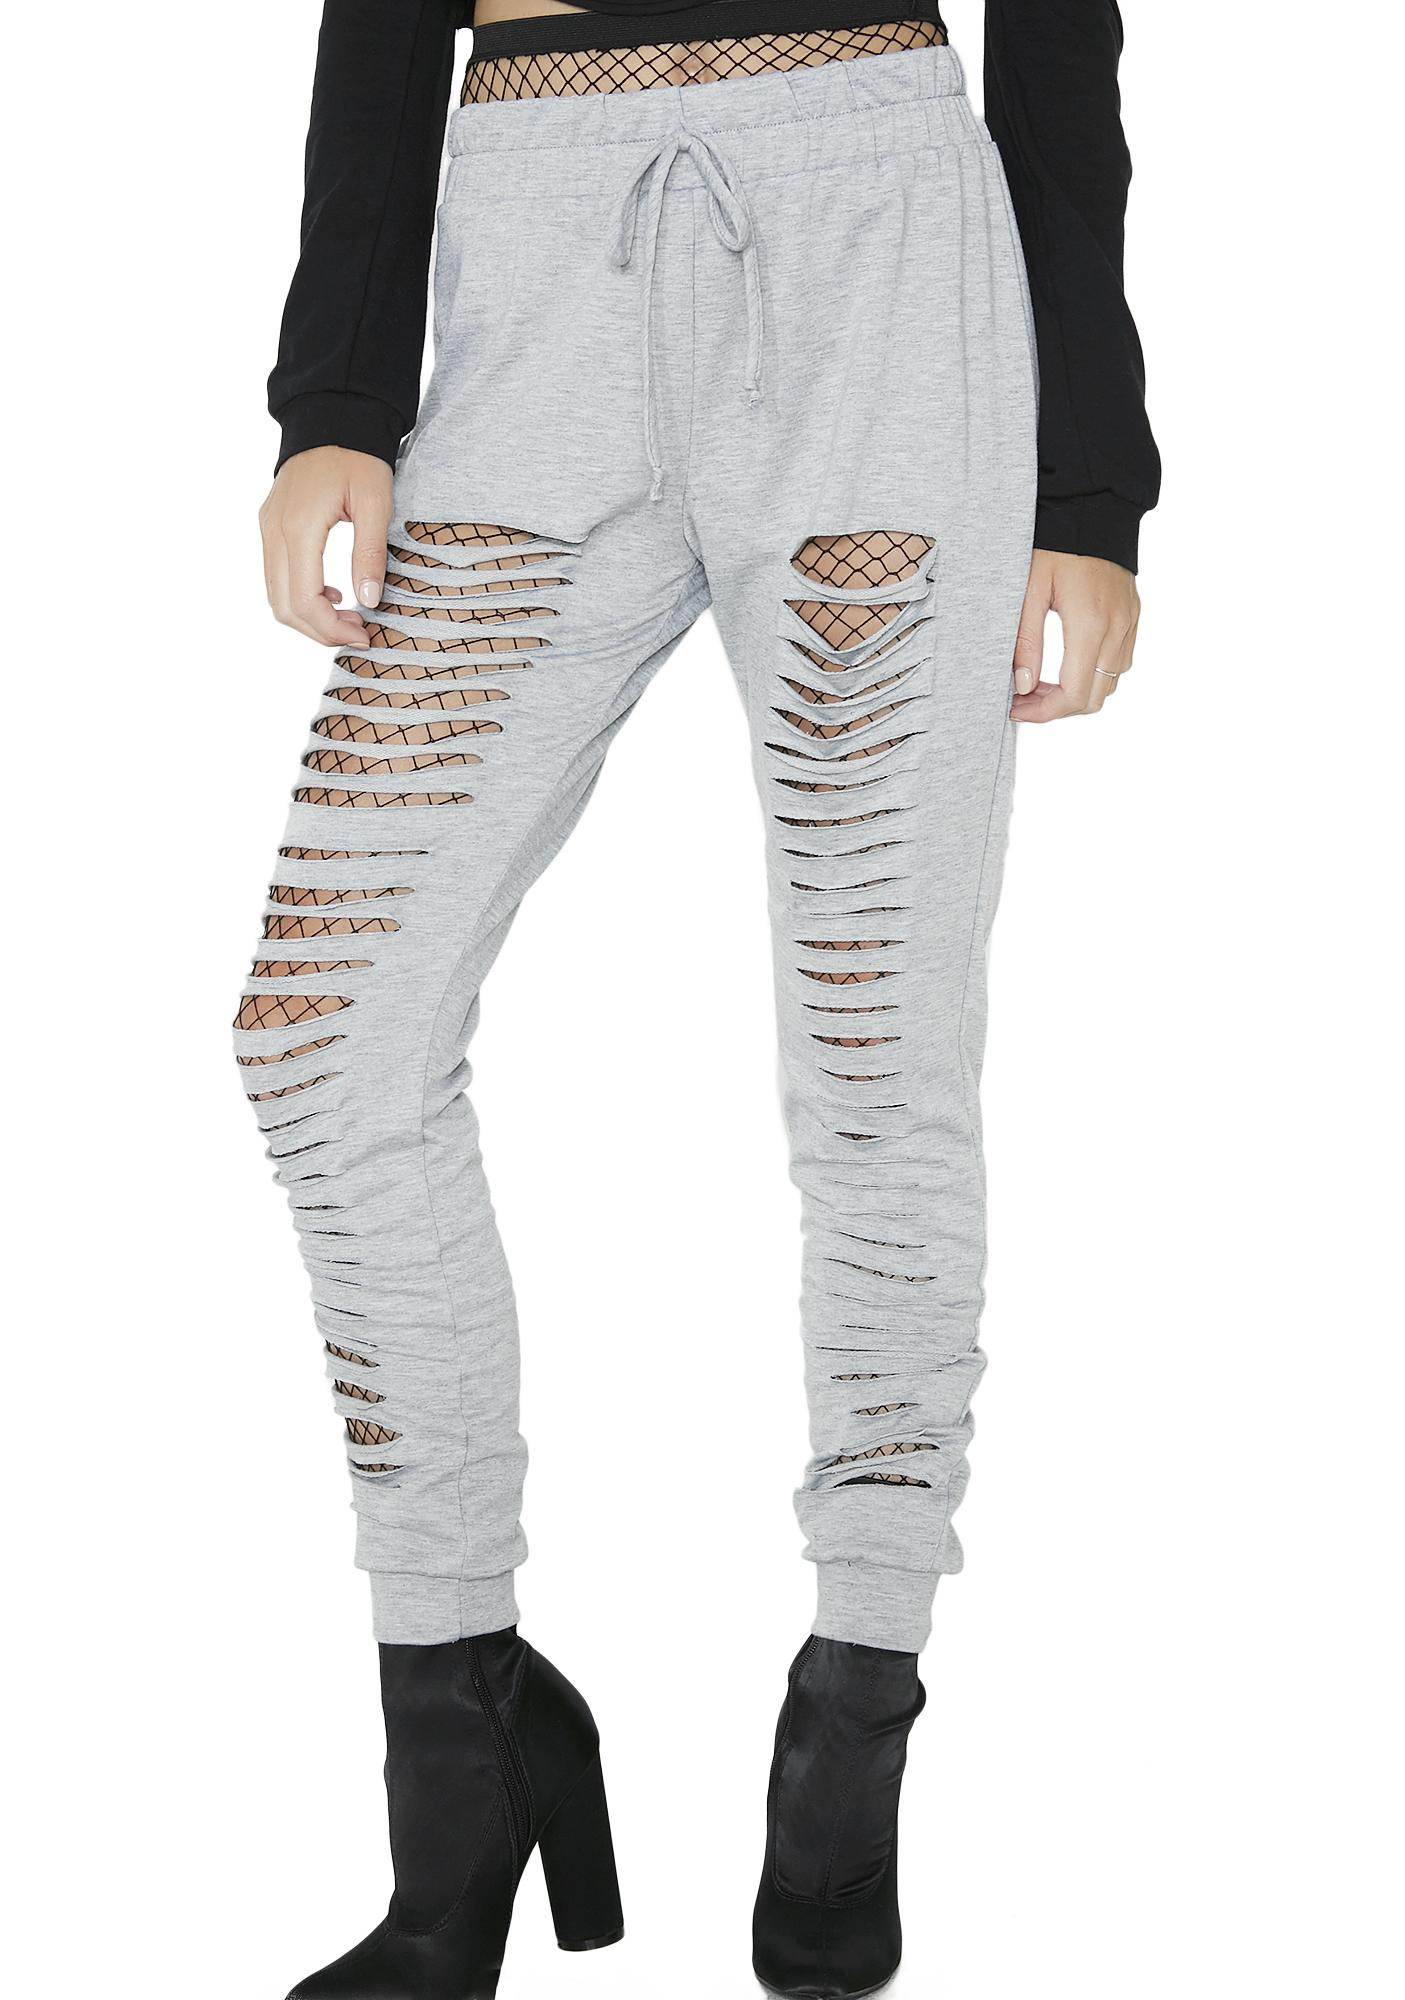 So Cutthroat Shredded Sweatpants